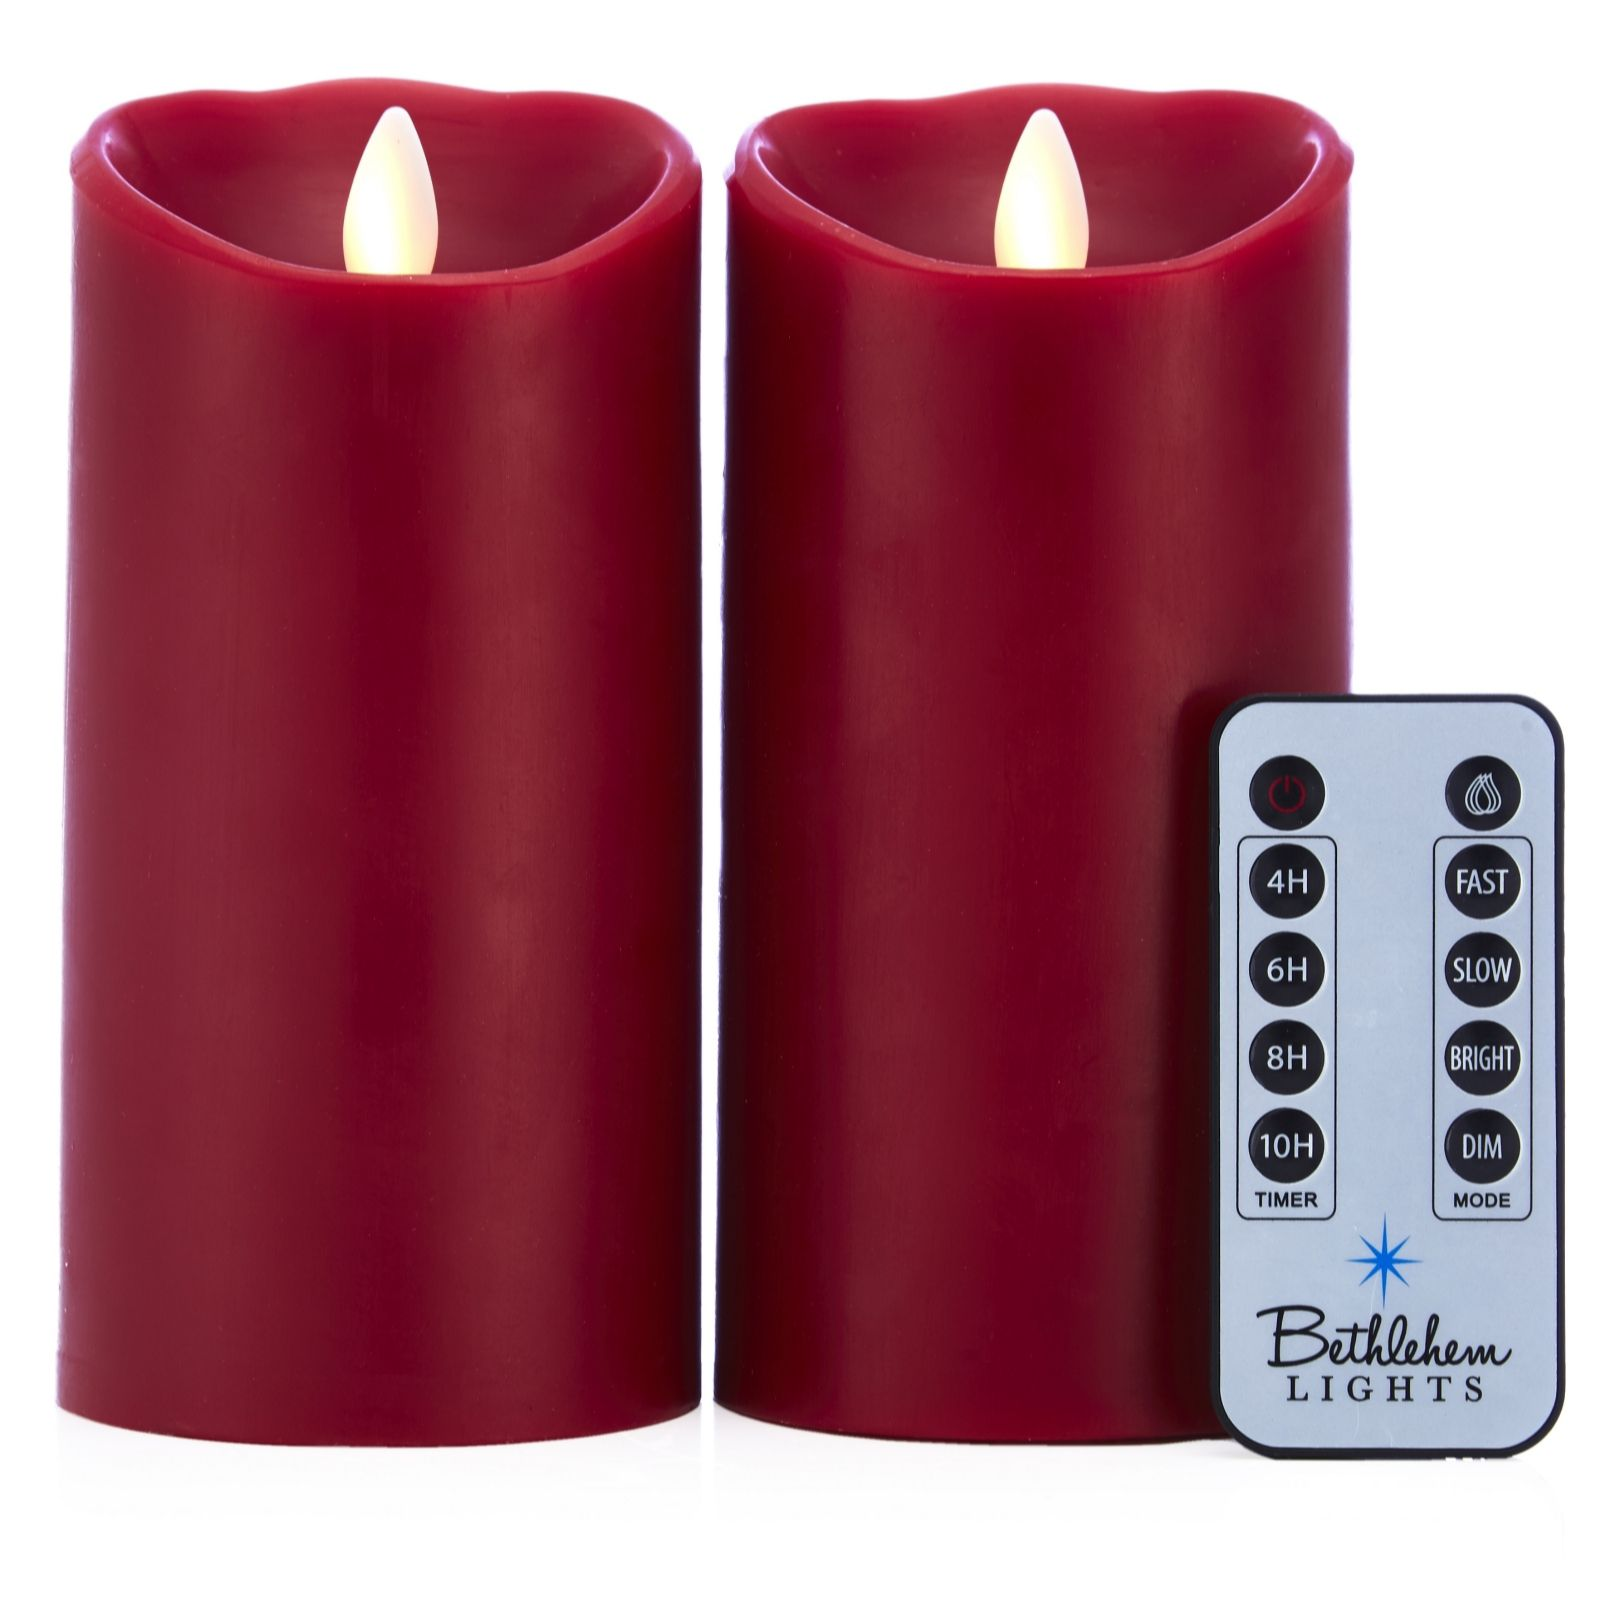 Bethlehem Lights Set Of 2 Touch Candles With Remote Control   707446